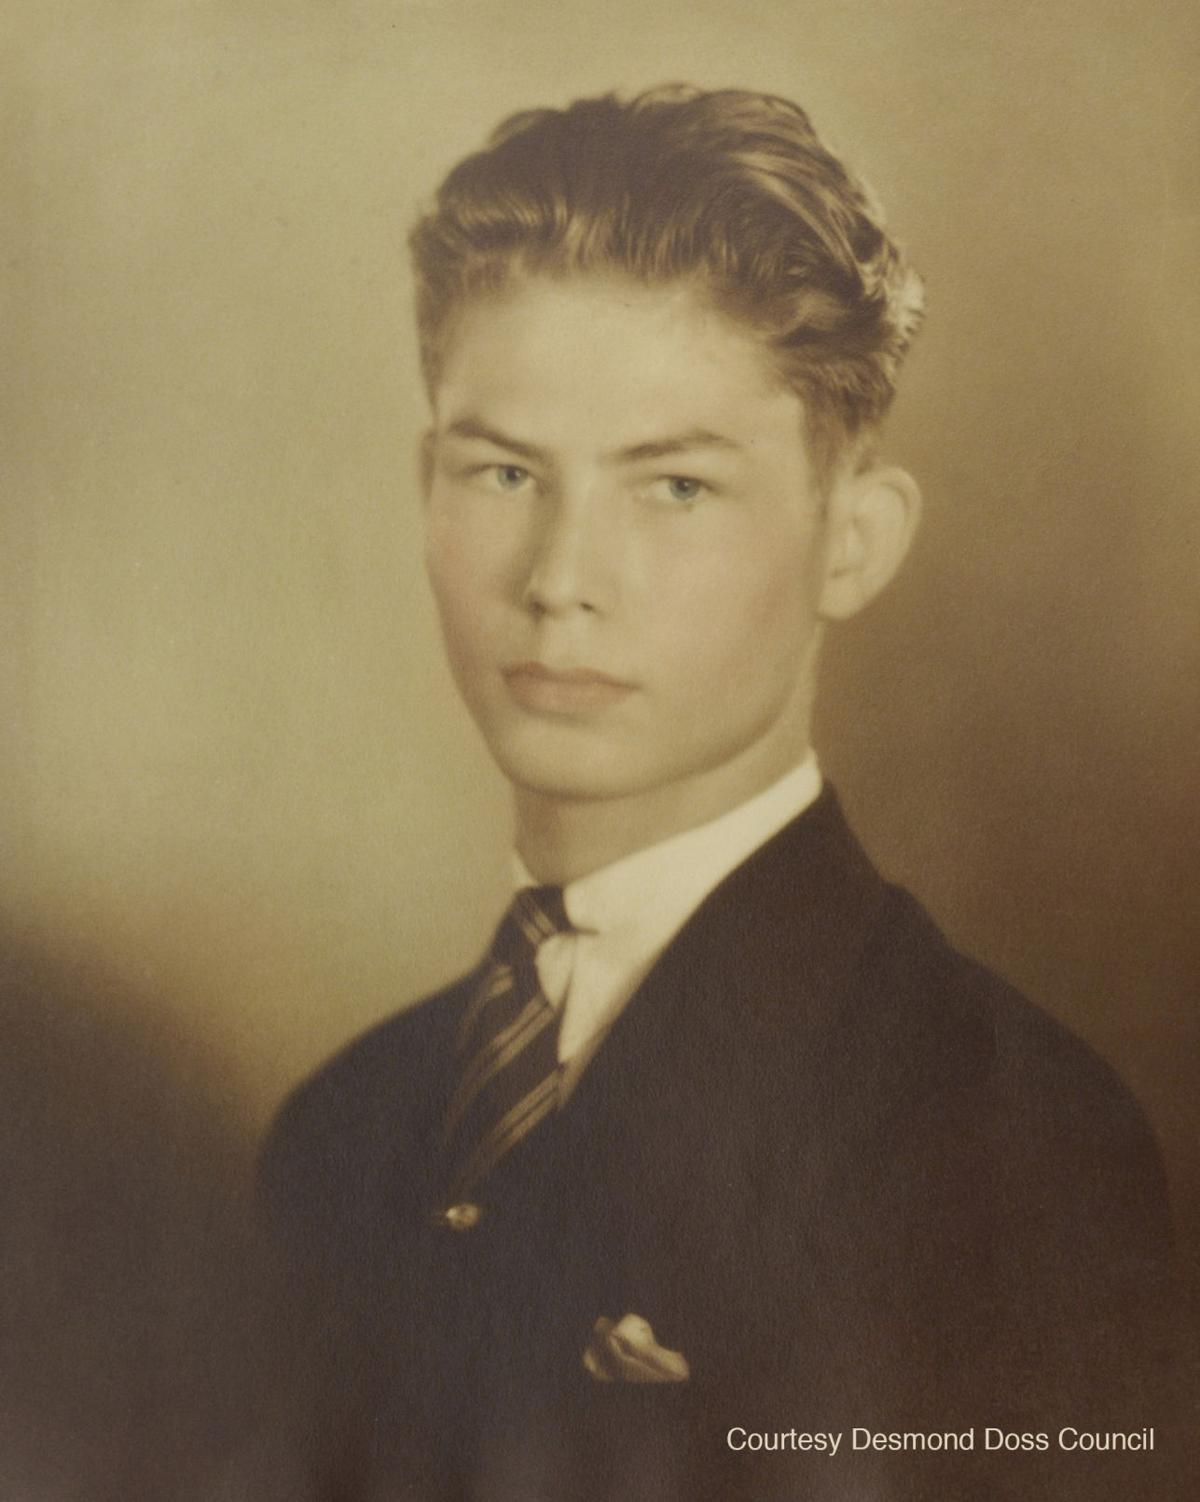 doss hindu single men Desmond doss – never heard of him moh for single-handedly carrying 75 wounded men out of a raging battlefield.